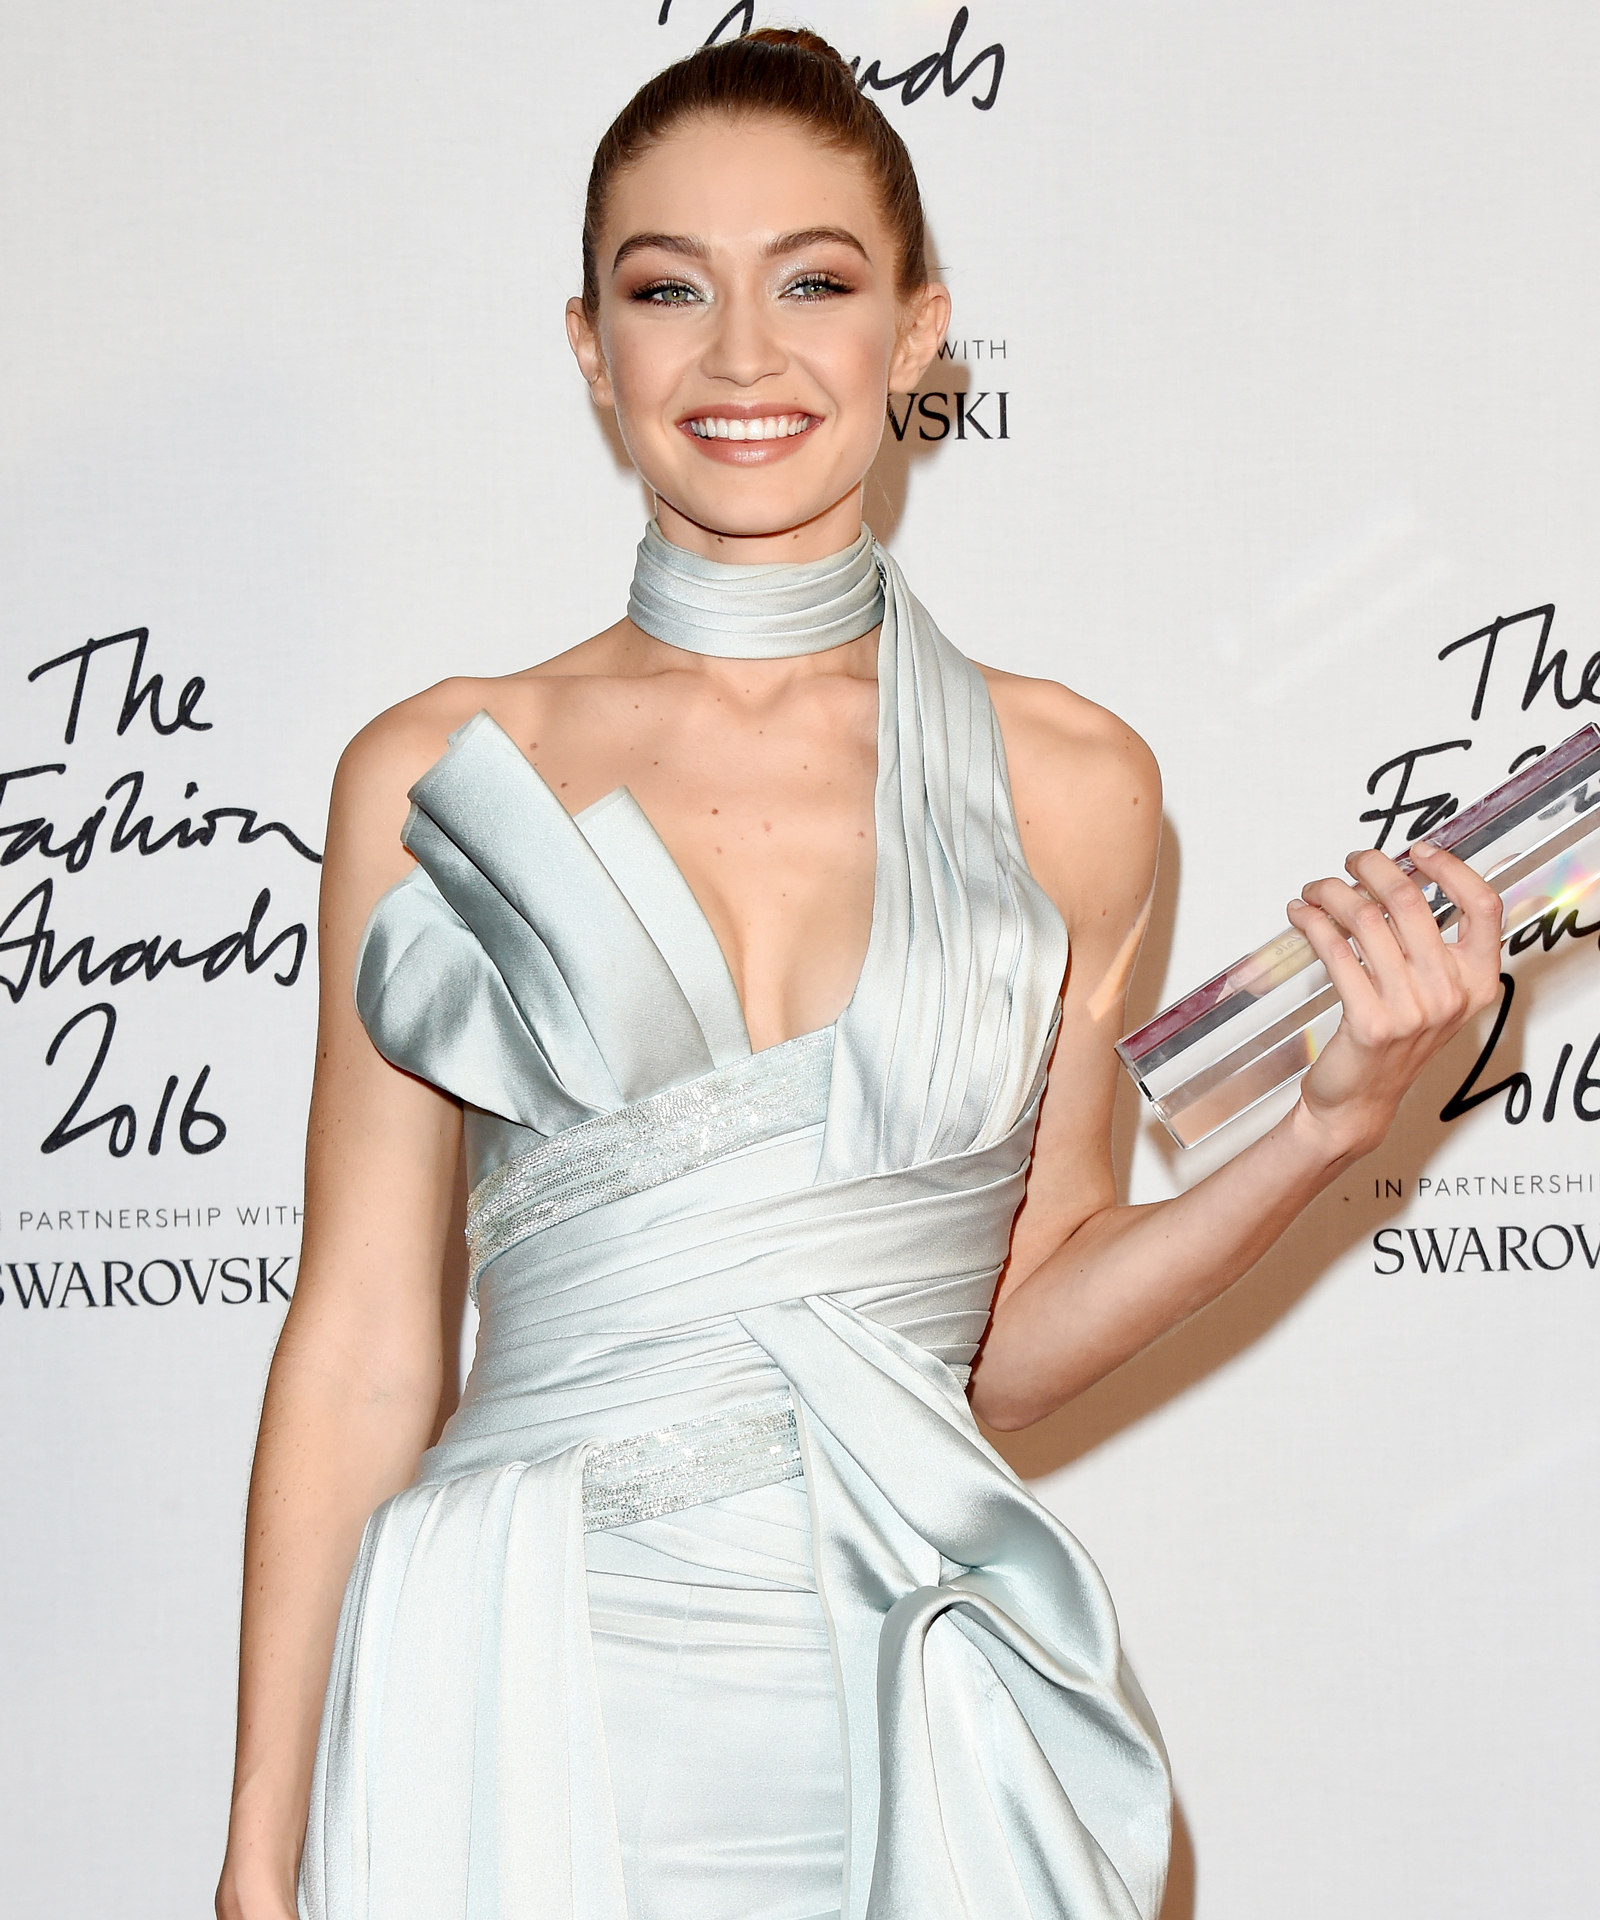 Gigi Hadid  - Winner Fashion Award